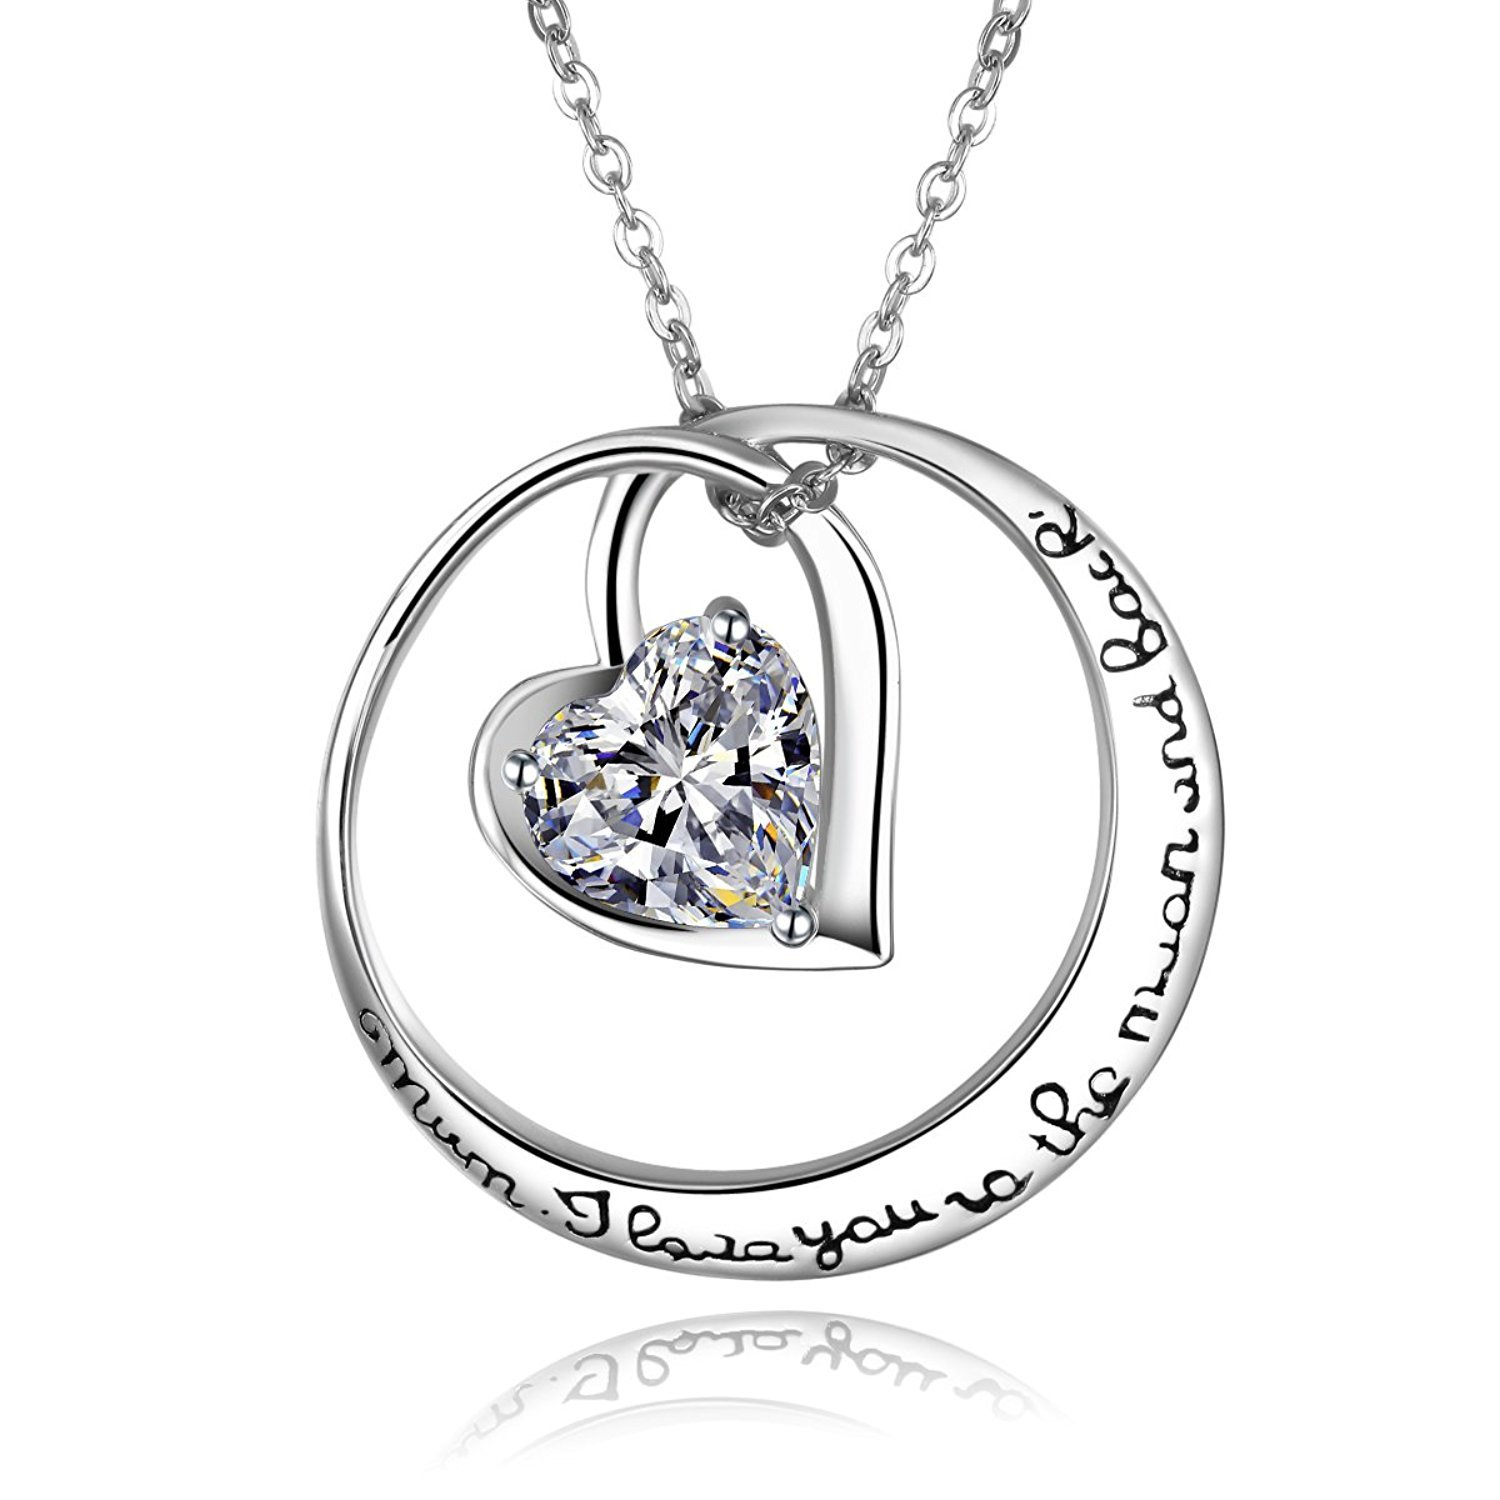 Sterling Silver I Love You To The Moon and Back Love Heart CZ Pendant Necklace